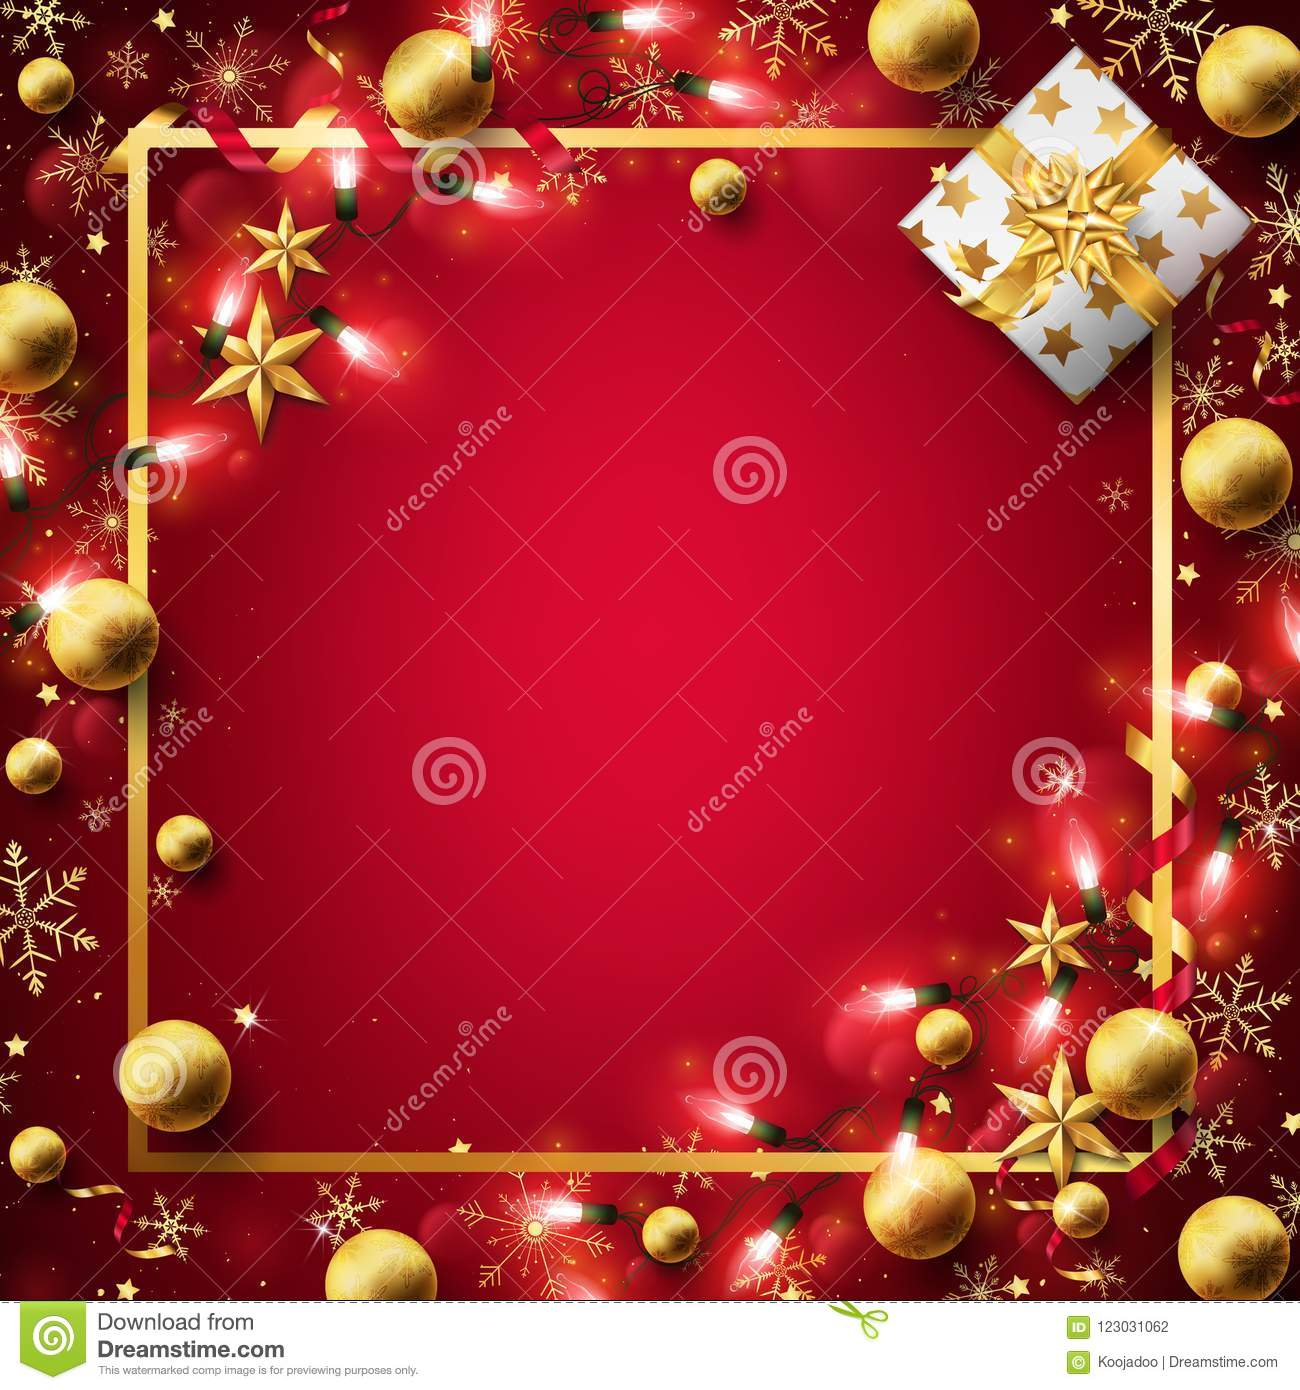 Free Christmas Background.Red Christmas Background Decorated In Gold Stock Vector